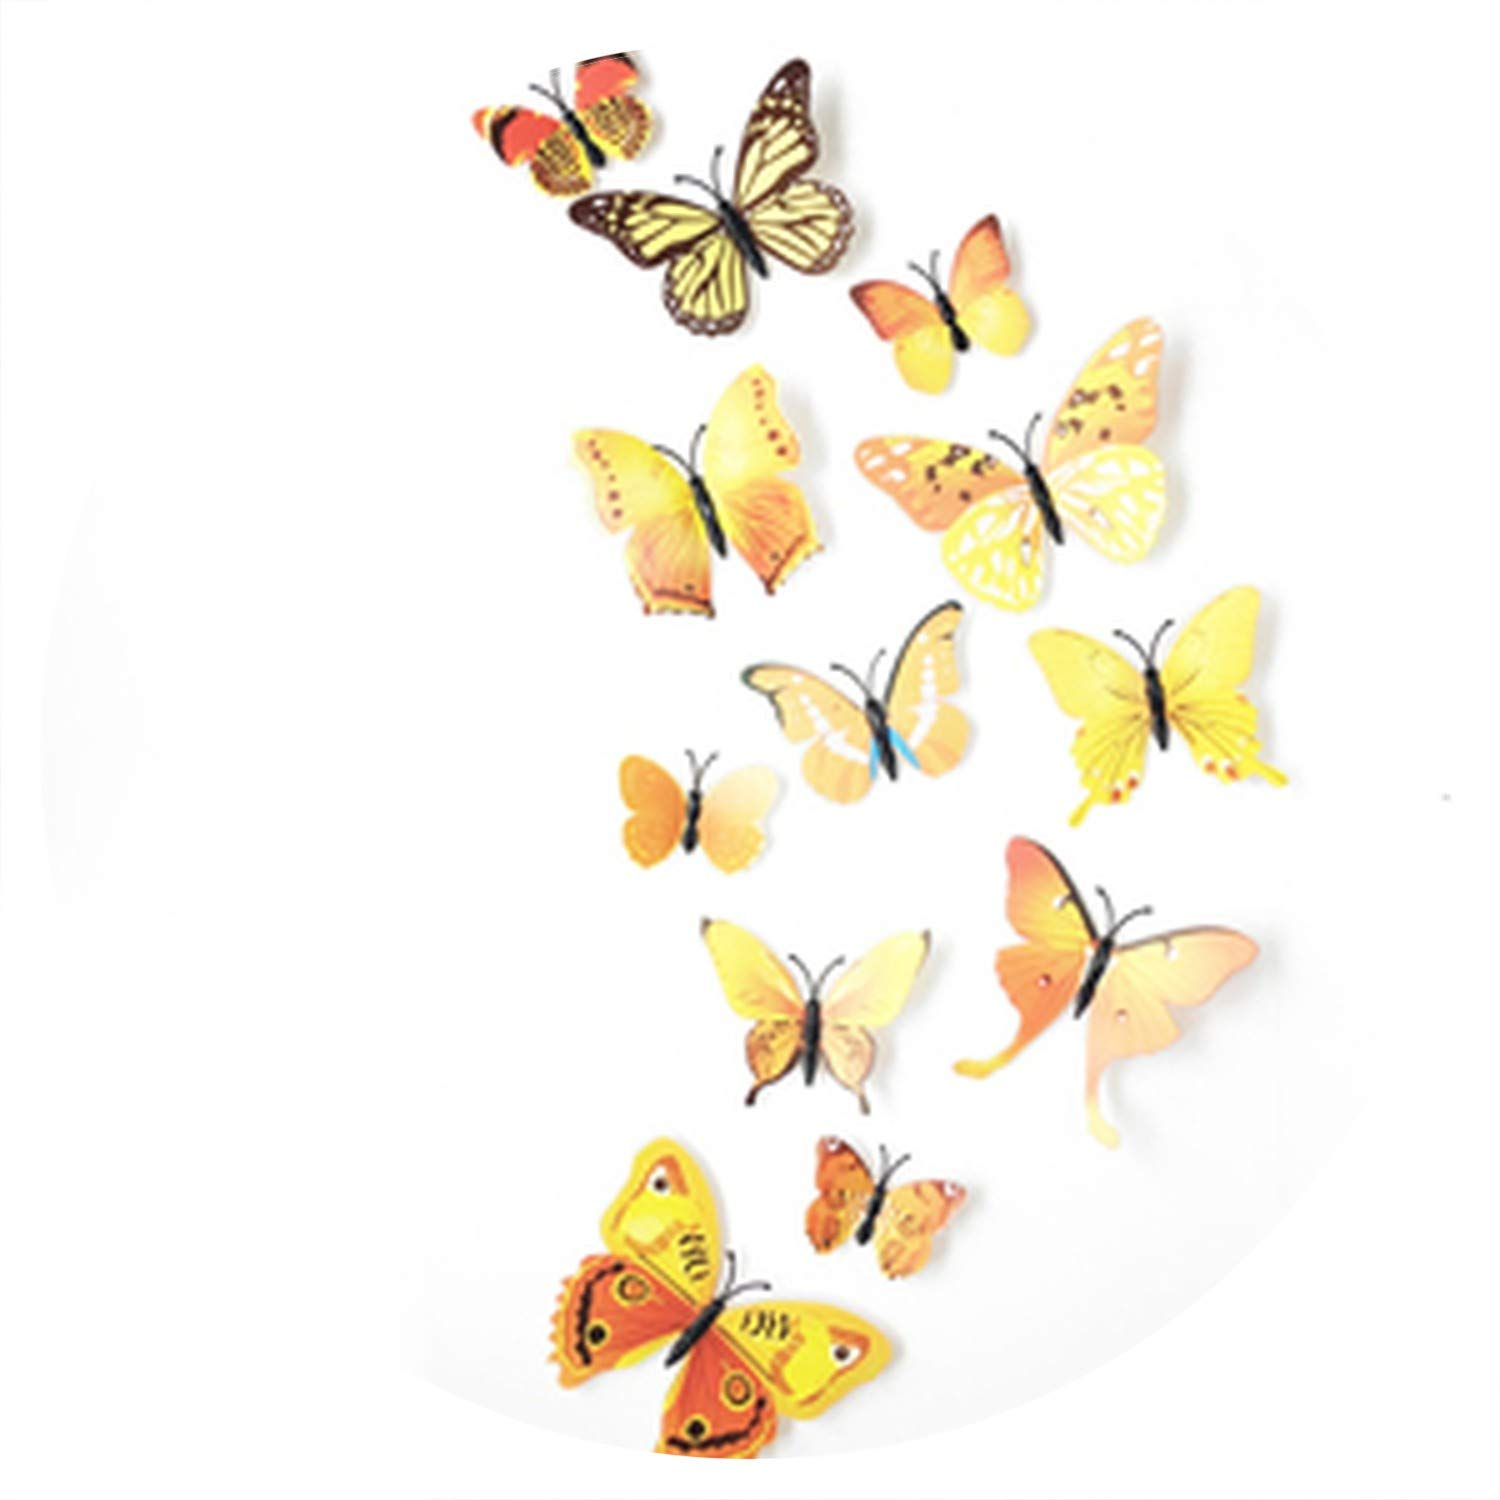 12Pc 3D Butterflies On The Wall Stickers Home Decor Wall Poster Art Adhesive Sticker Wedding Decor Vinyl Wall Decals Muursticker,Yellow